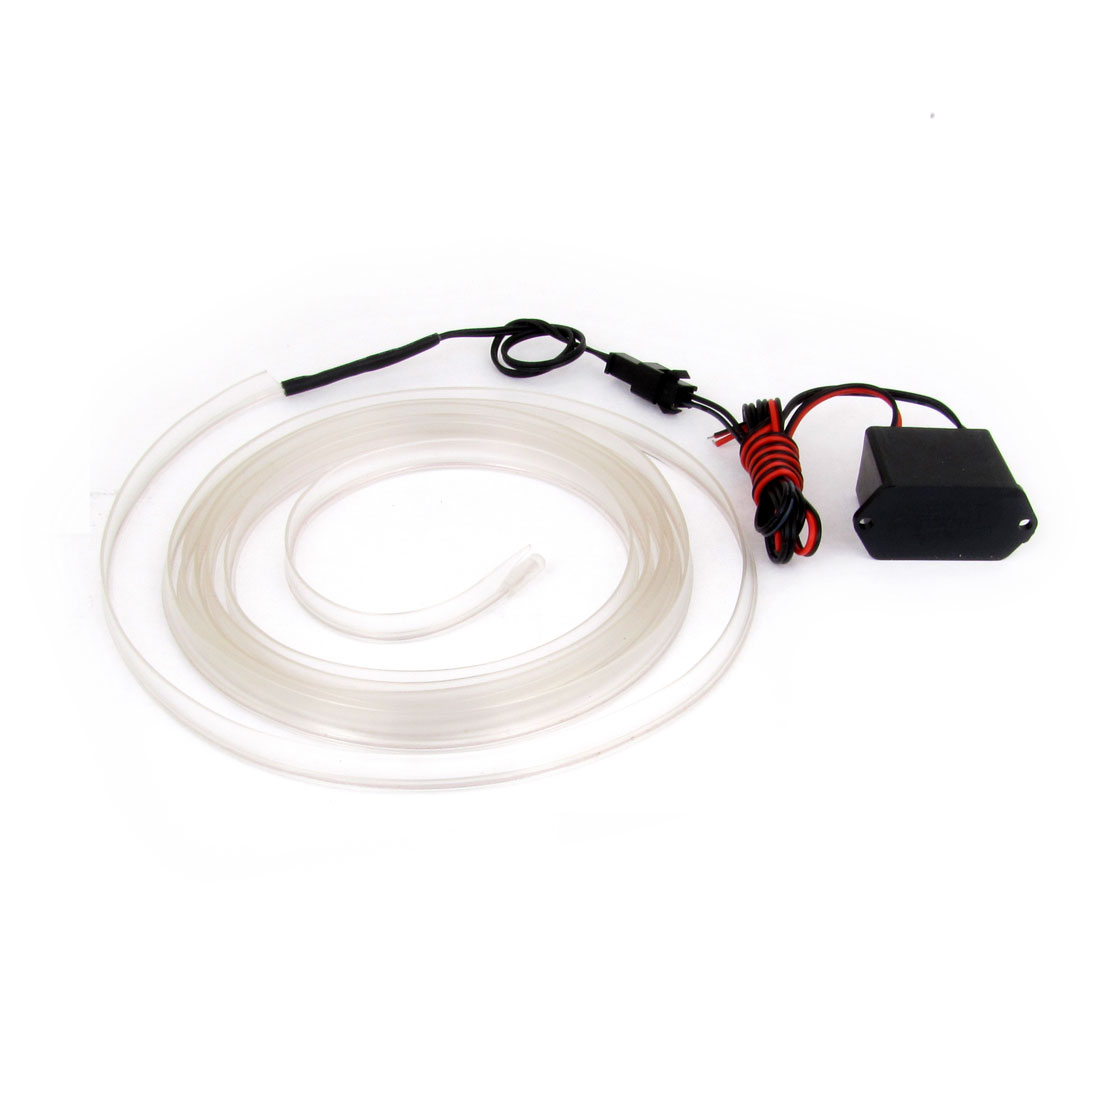 White EL Wire Neon Flexible Glow Lighting String 2M for Car Dance Party